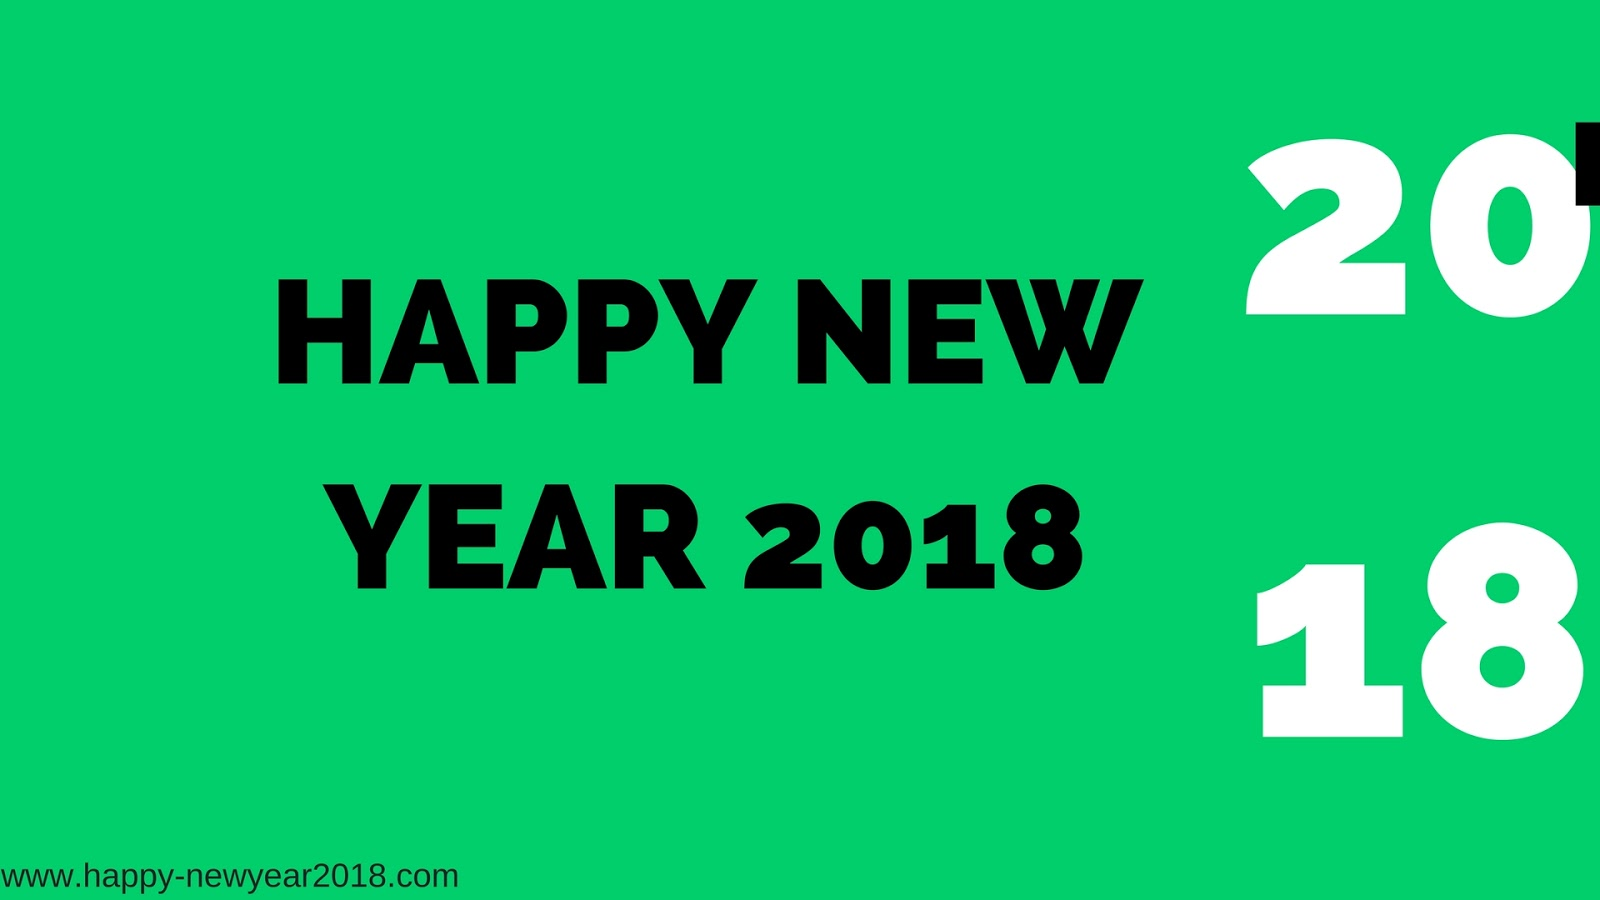 Happy new year 2018 quotes images hd